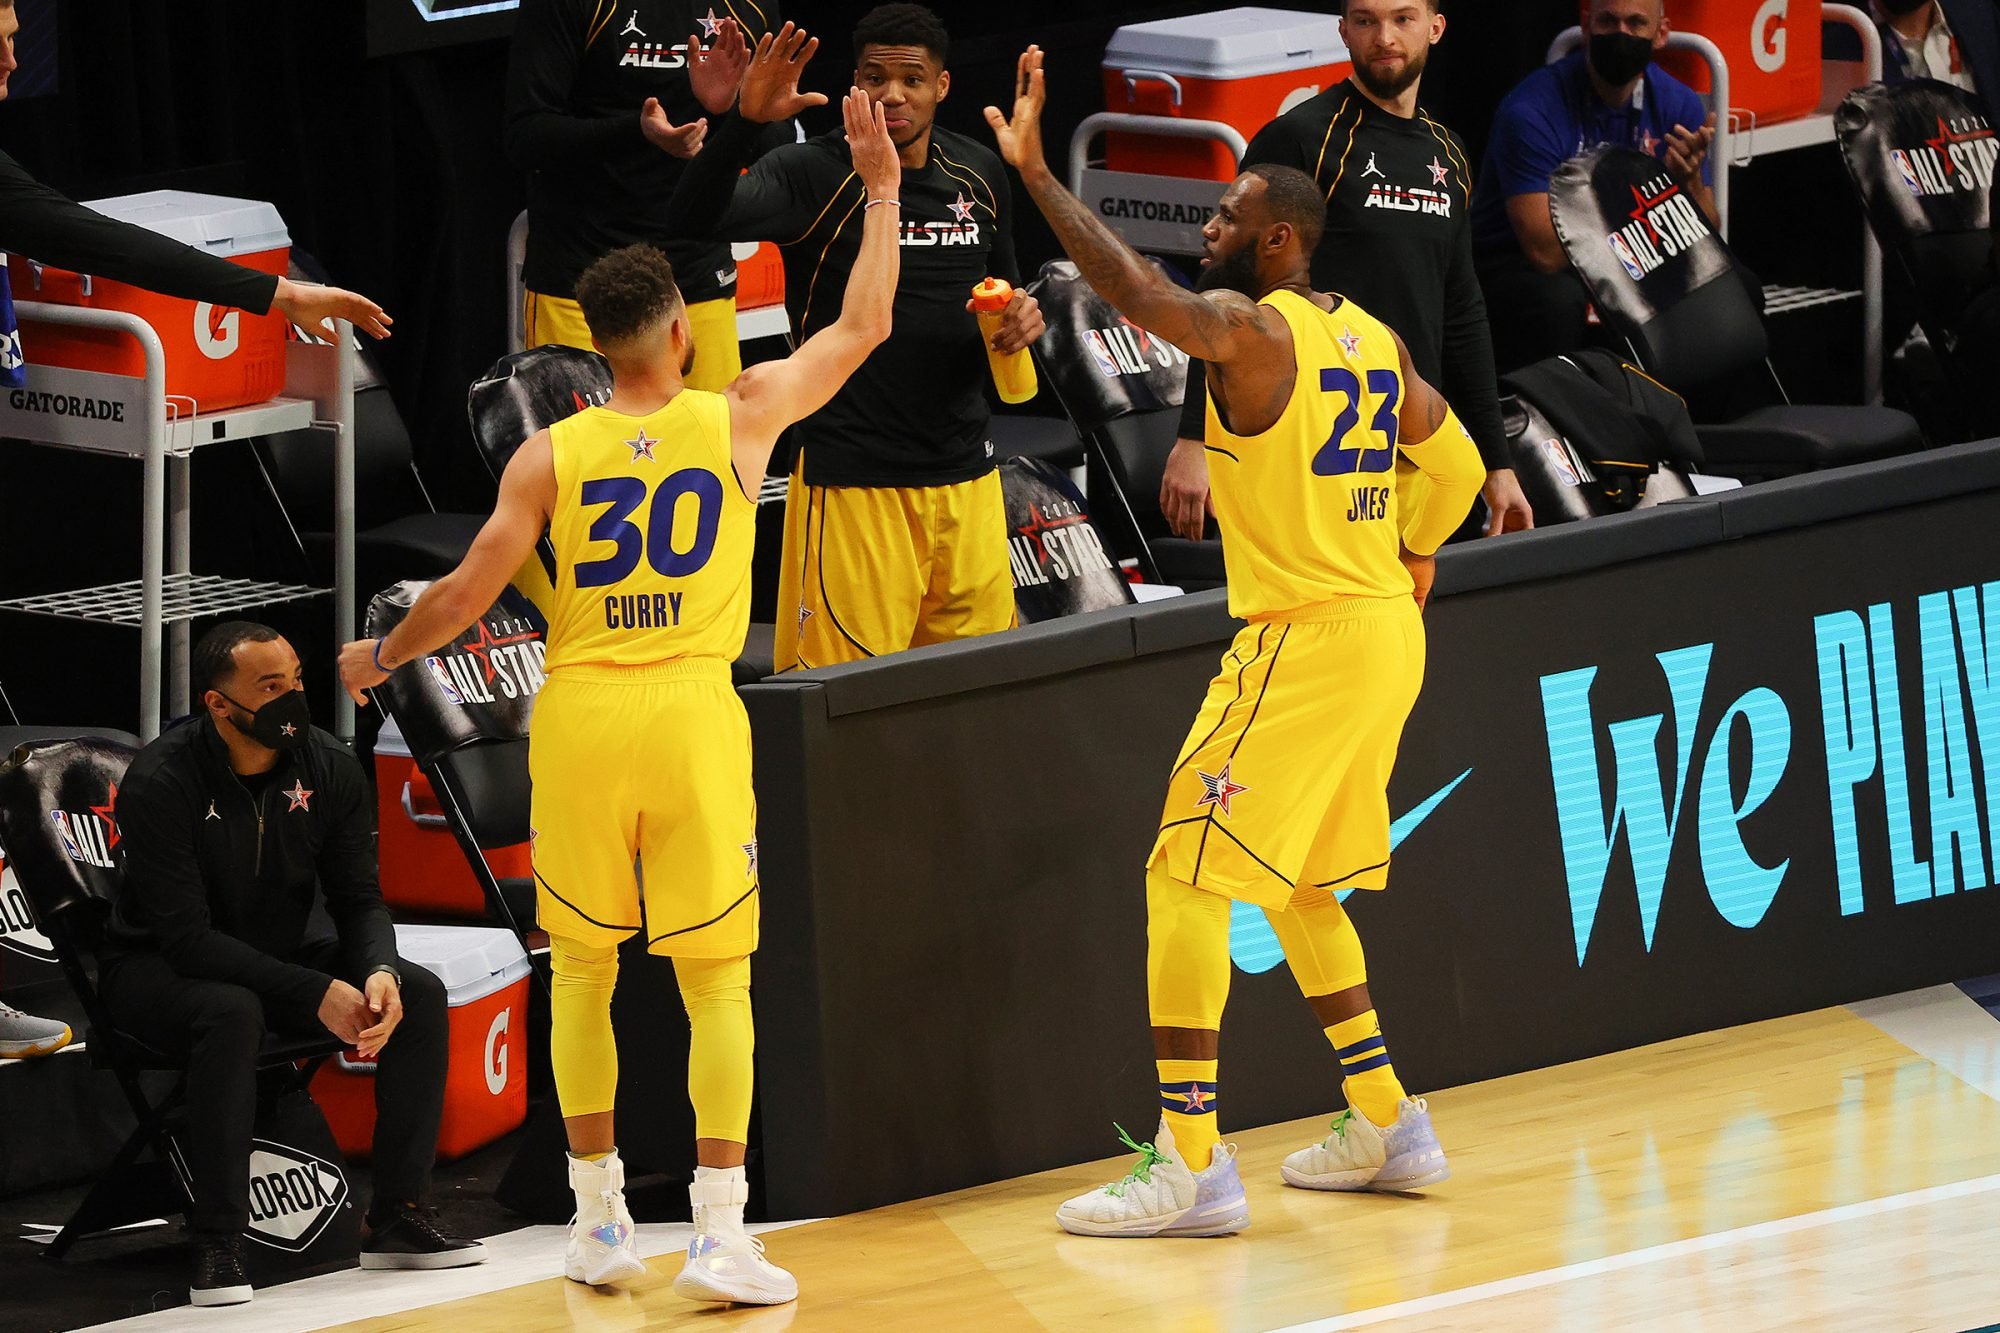 Stephen Curry #30 and LeBron James #23 of Team LeBron high five on the court during the 70th NBA All Star Game